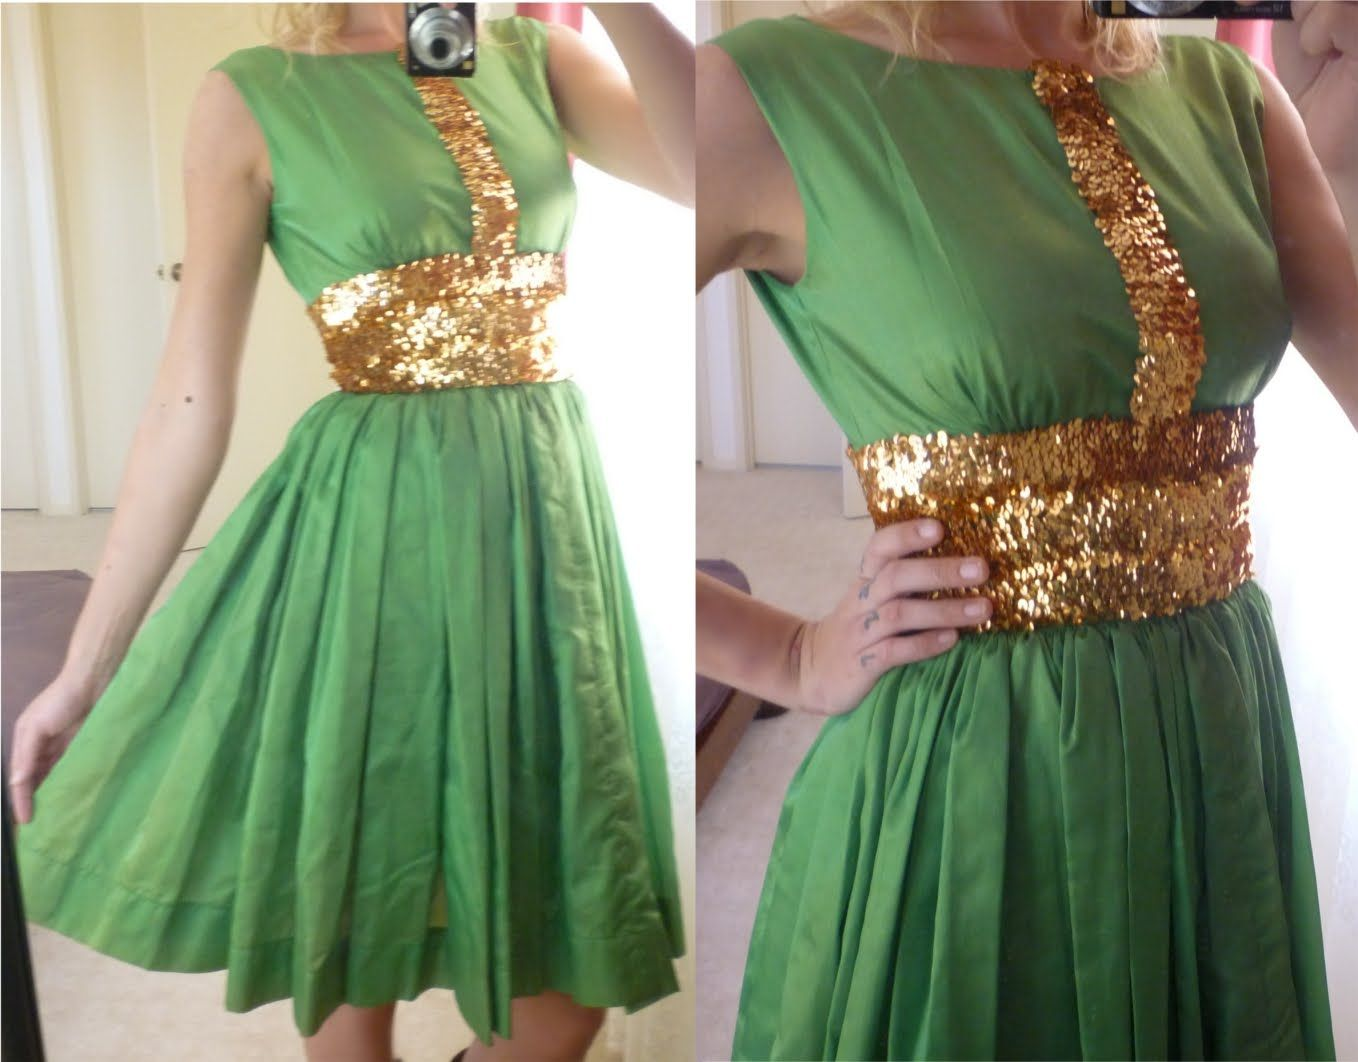 Stunning green and gold sequin s dress all things green uc